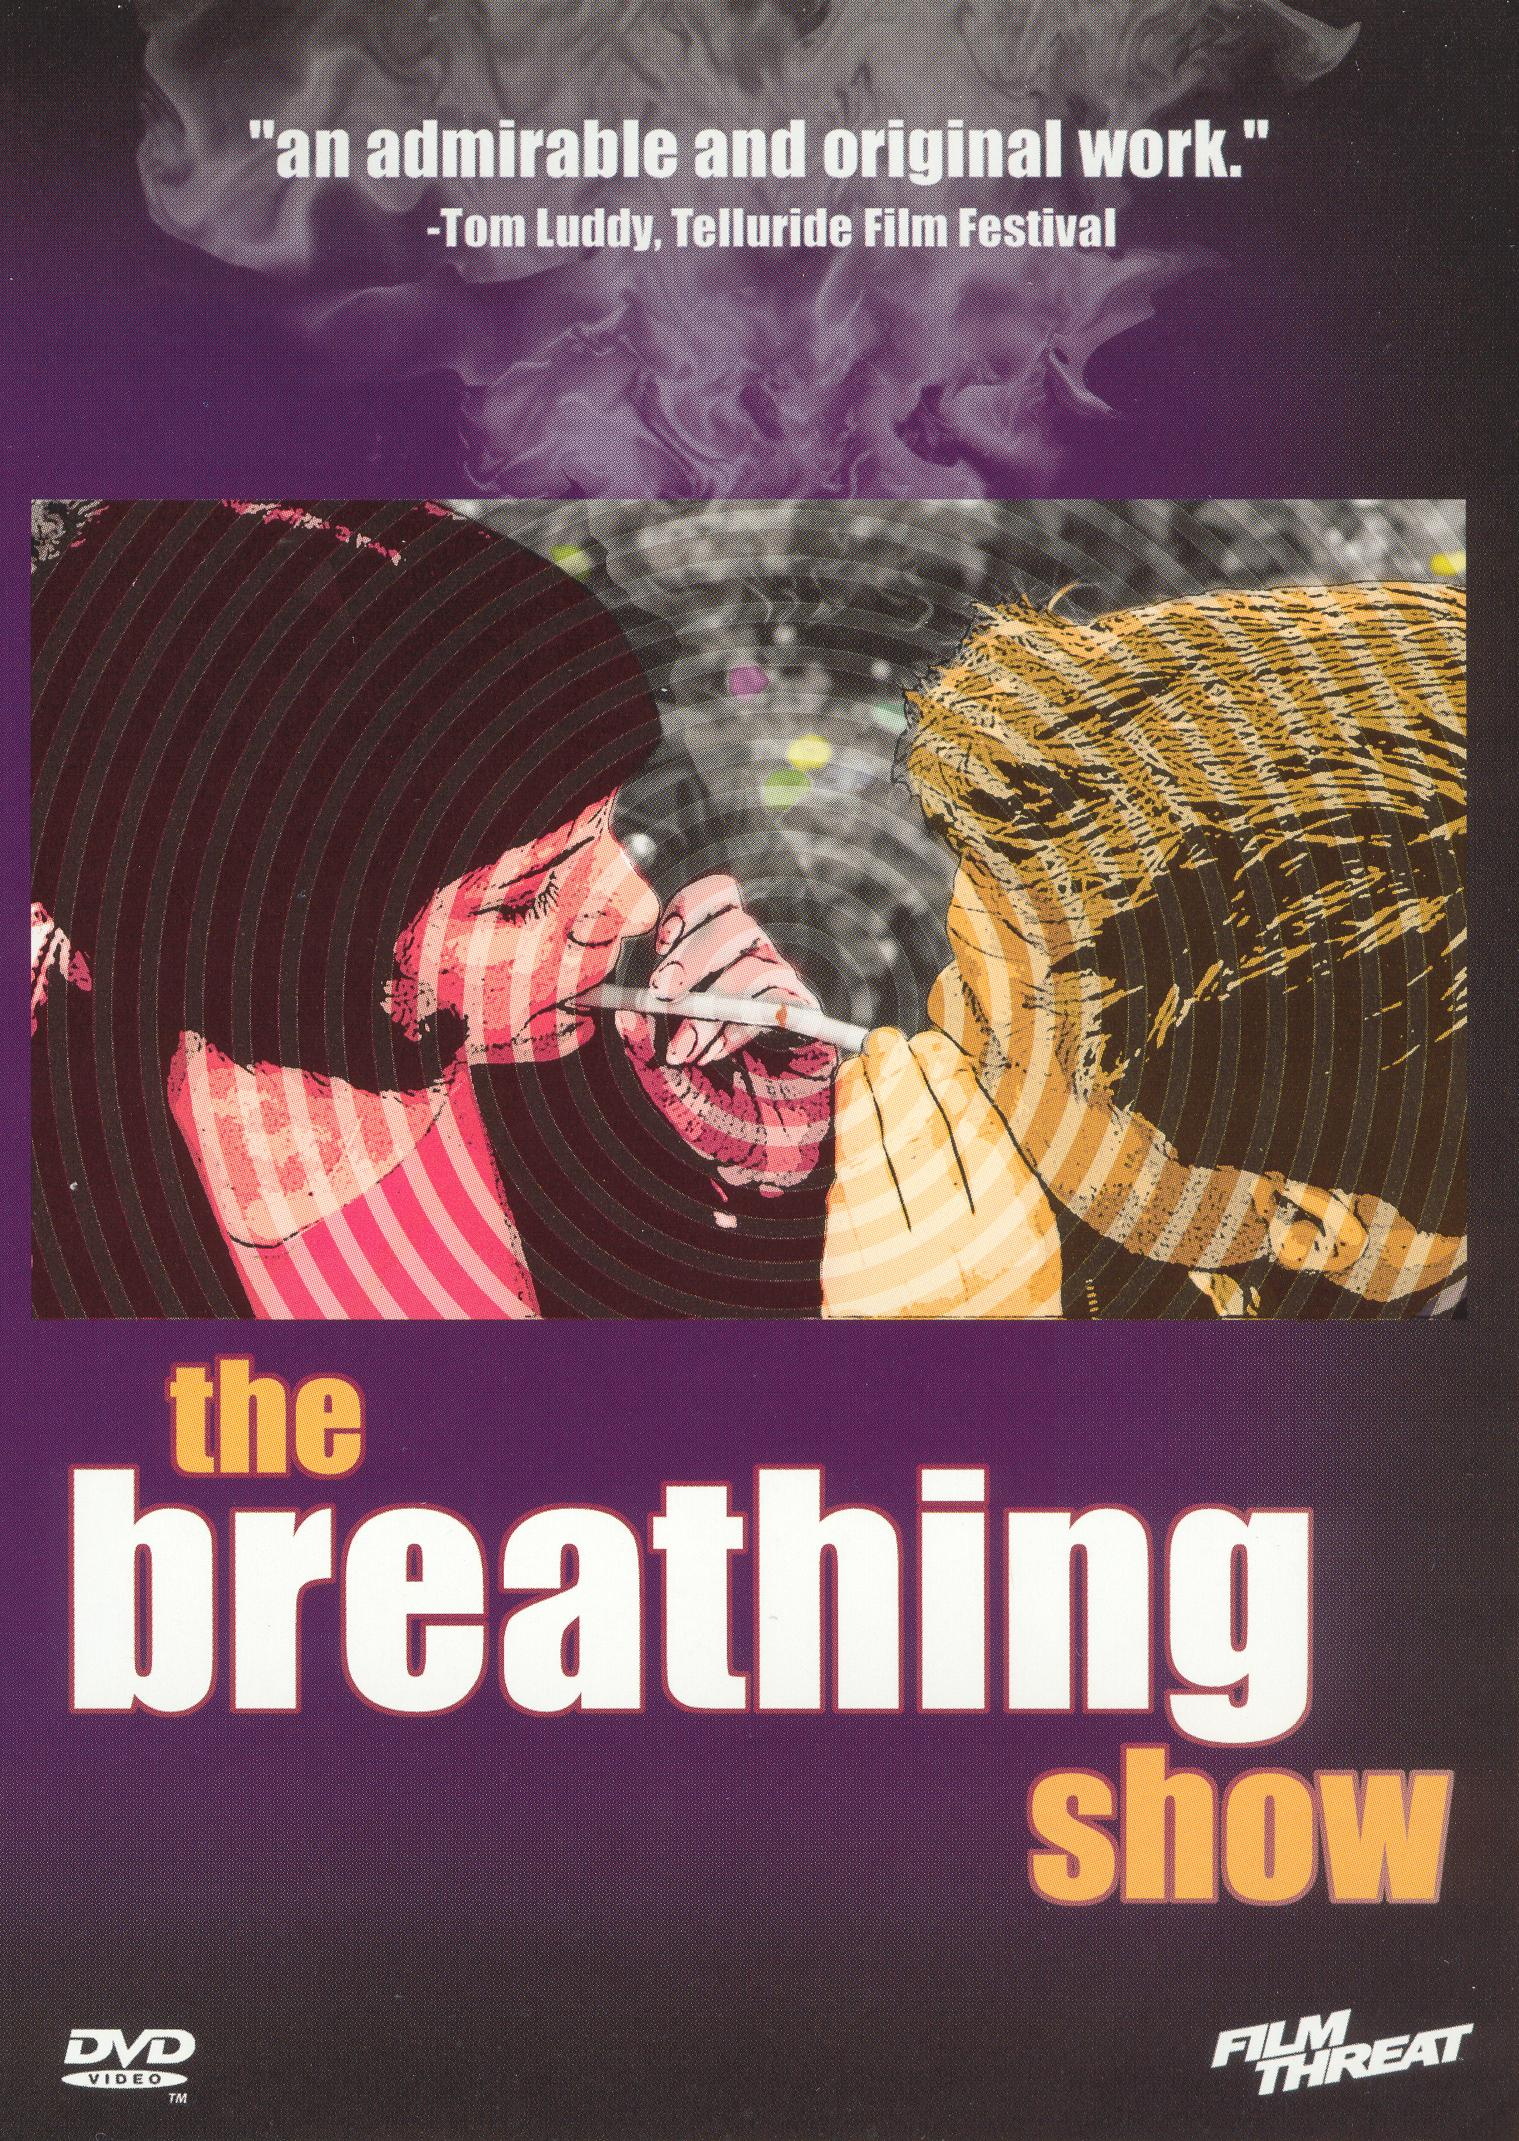 The Breathing Show